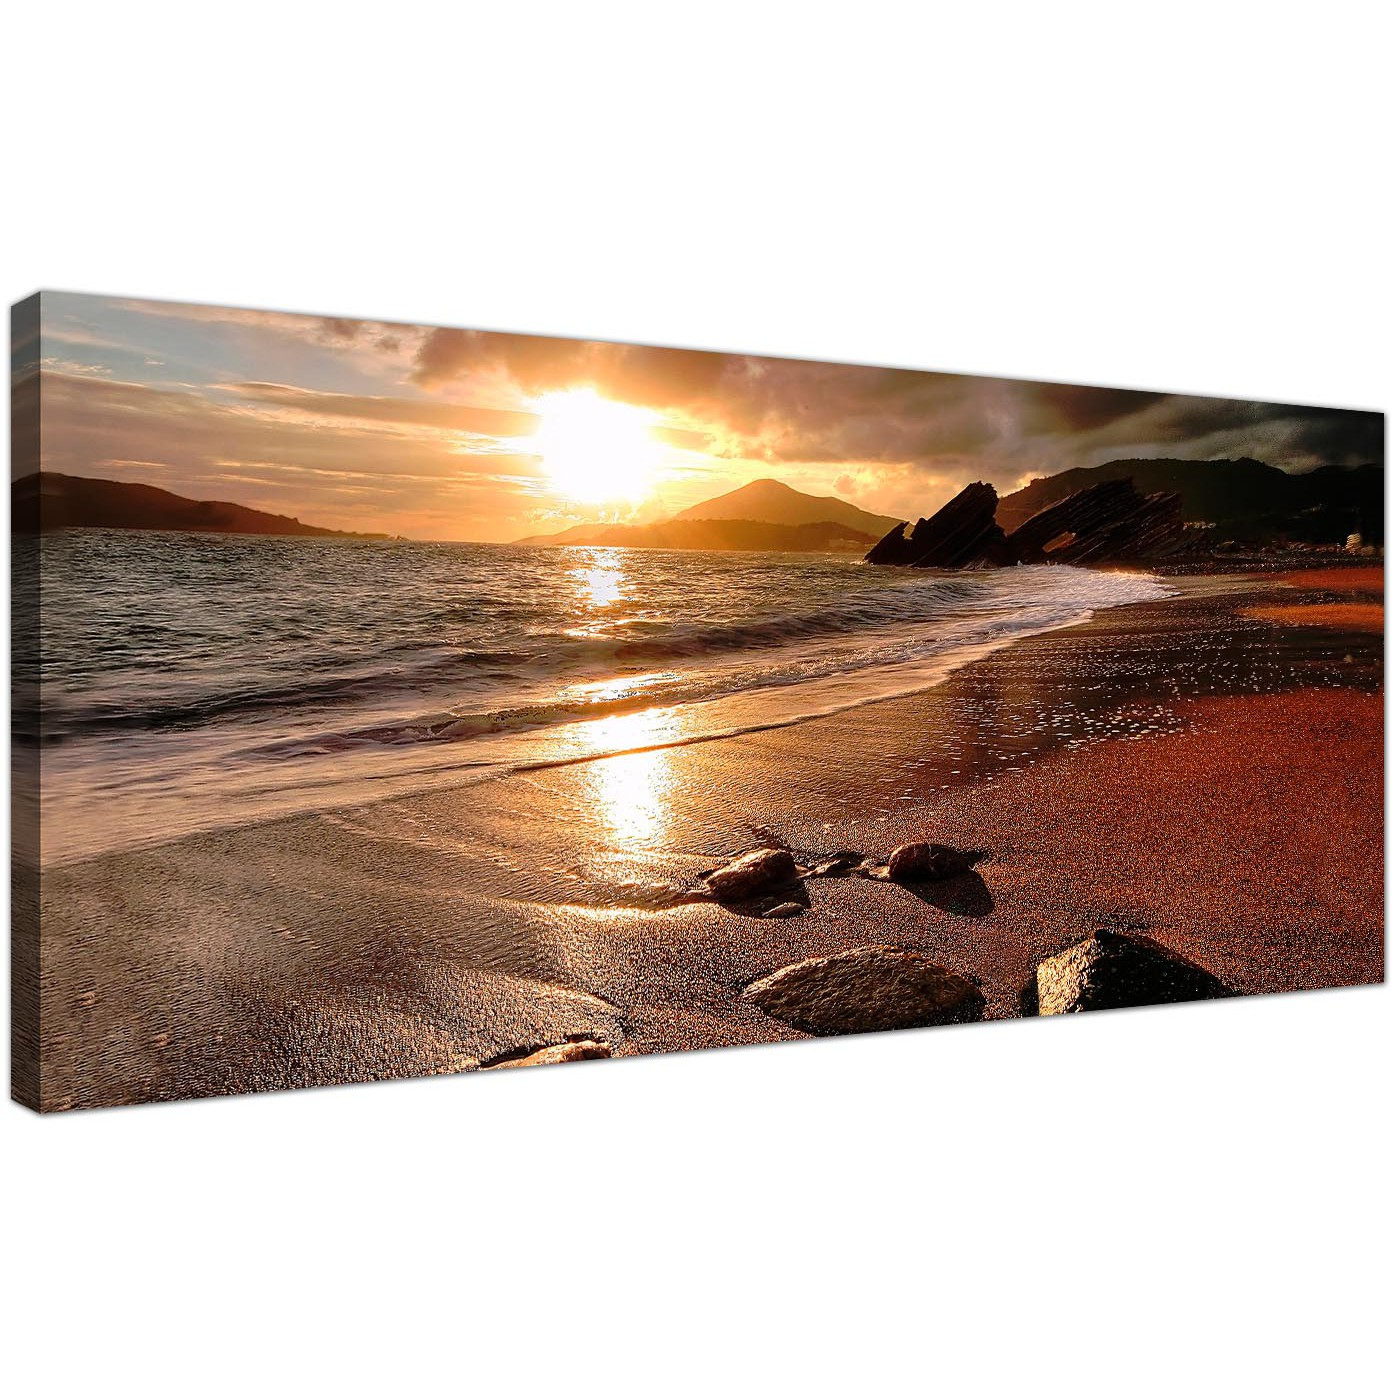 Display Gallery Item 1; Large Canvas Wall Art Sepia Panoramic Nautical  Landscape 1131 Display Gallery Item 2 ... Part 53